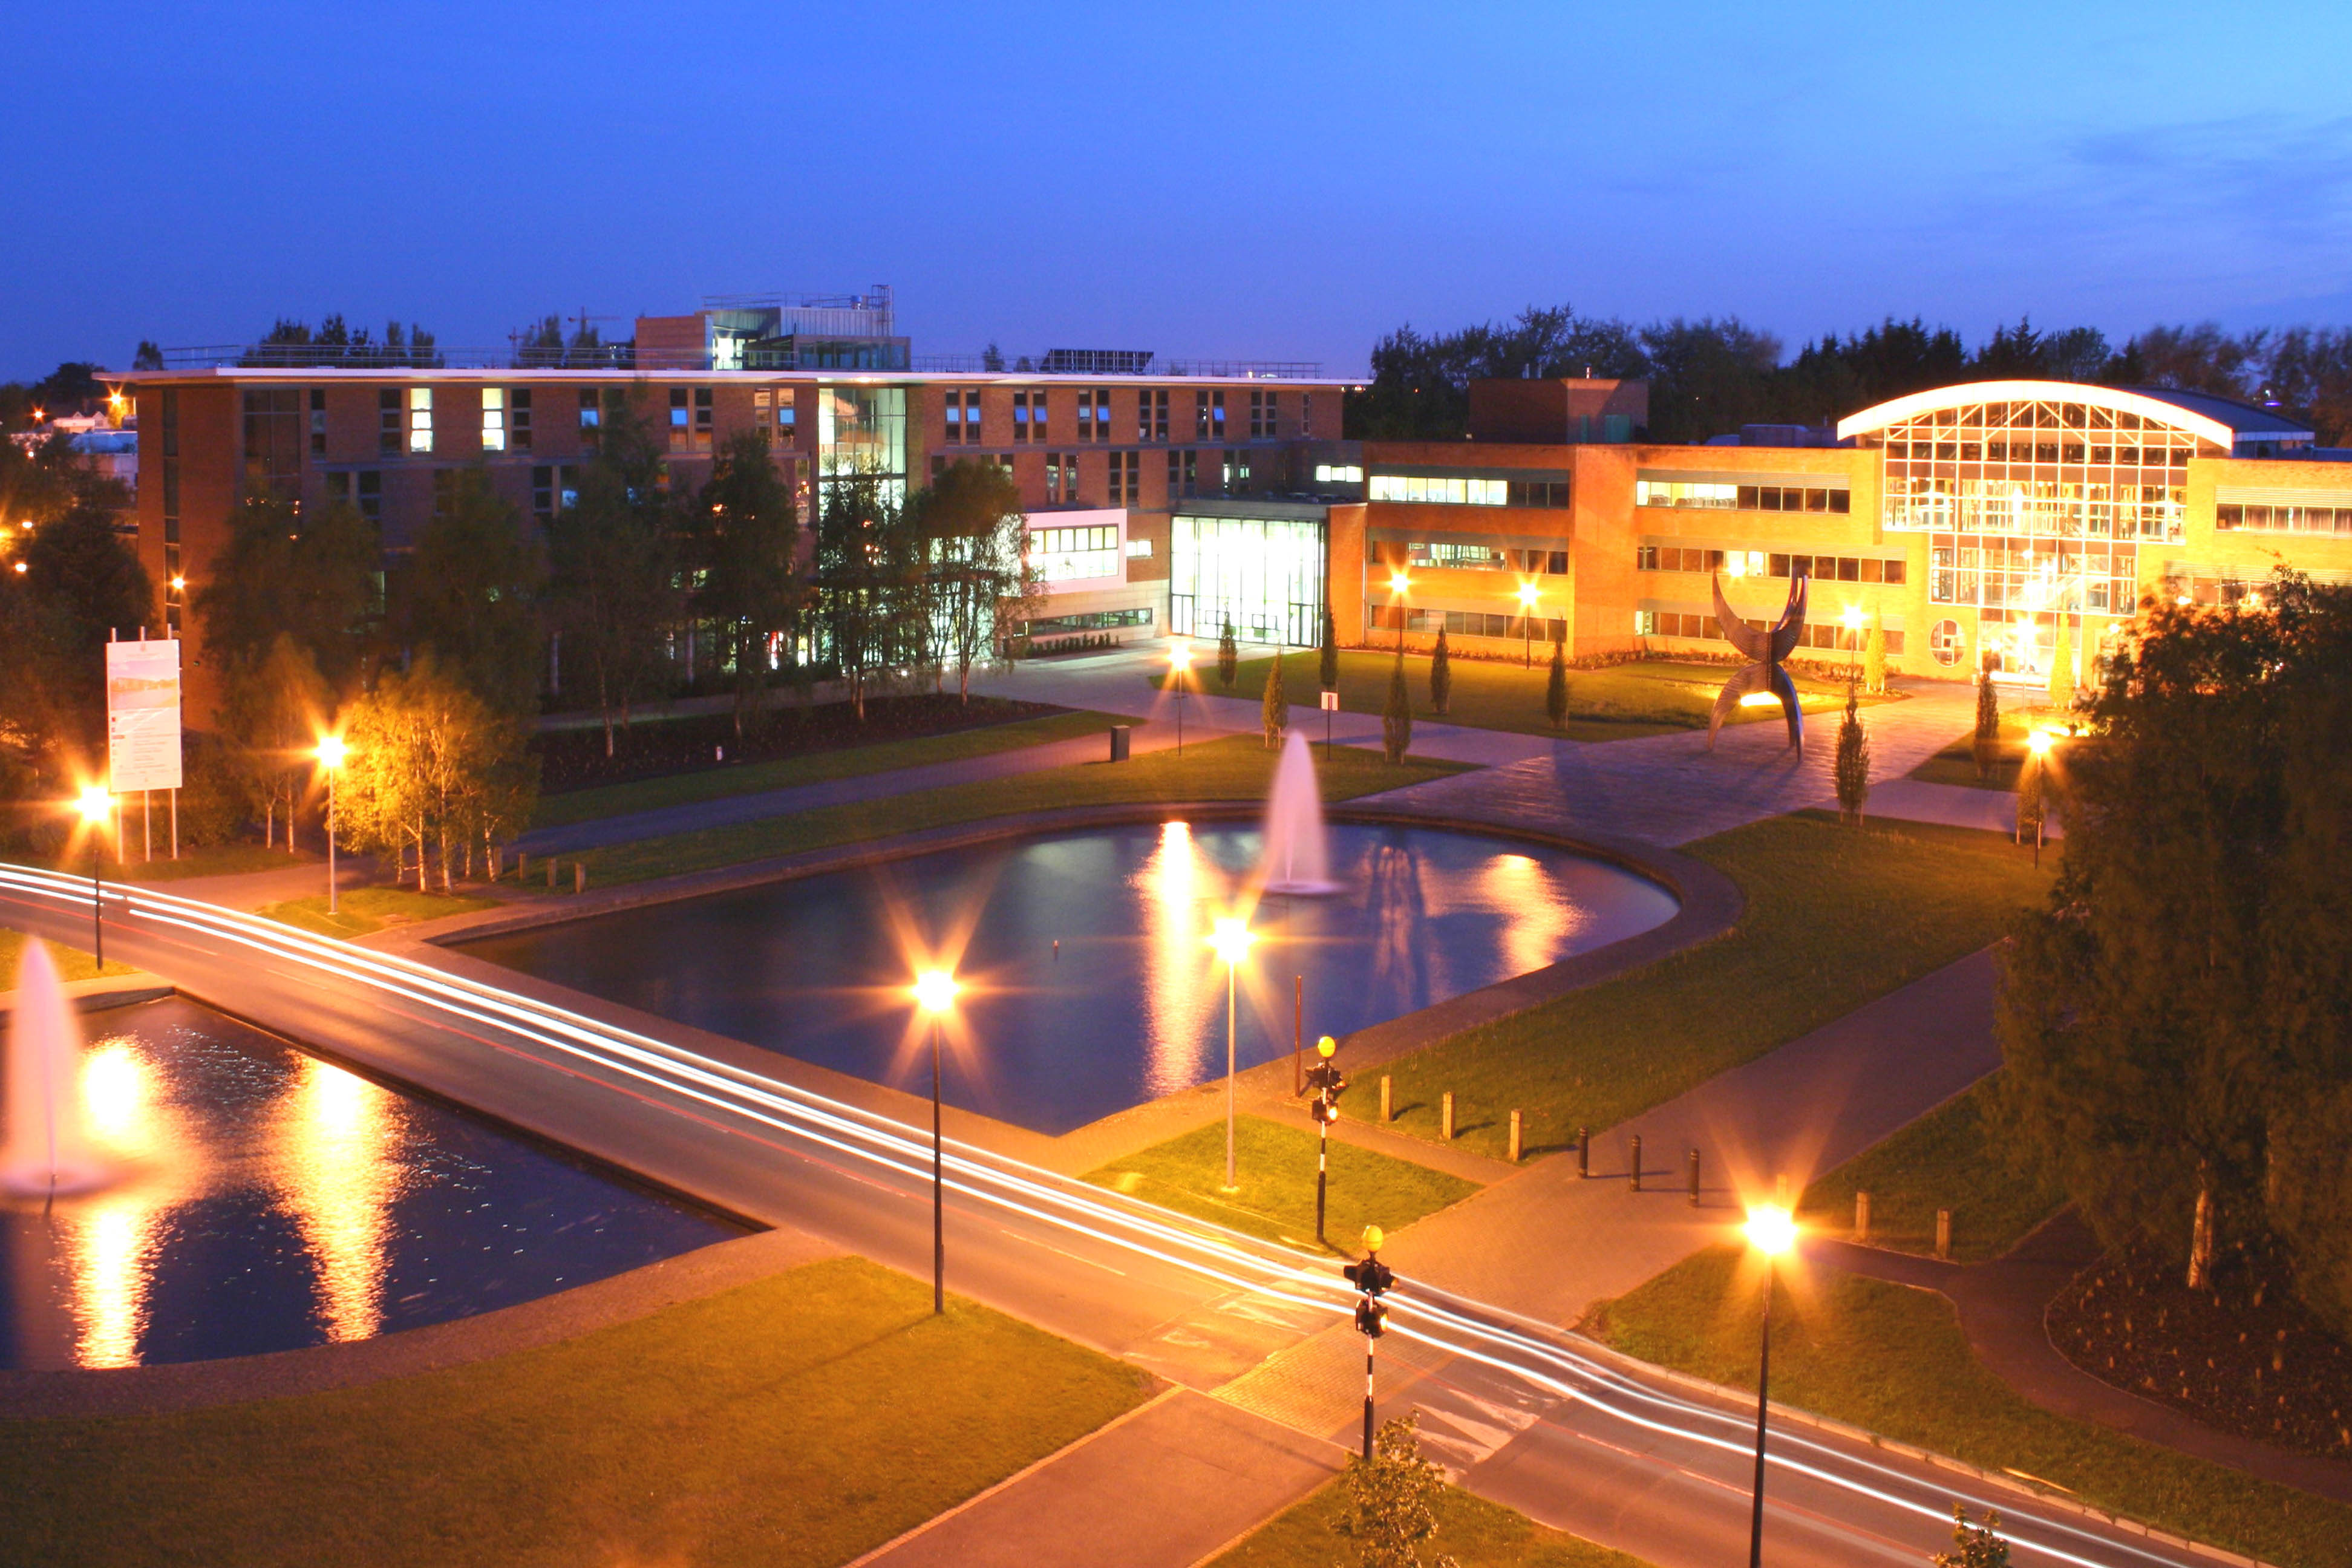 Ul Voted As One Of The World S Top 30 Green Universities